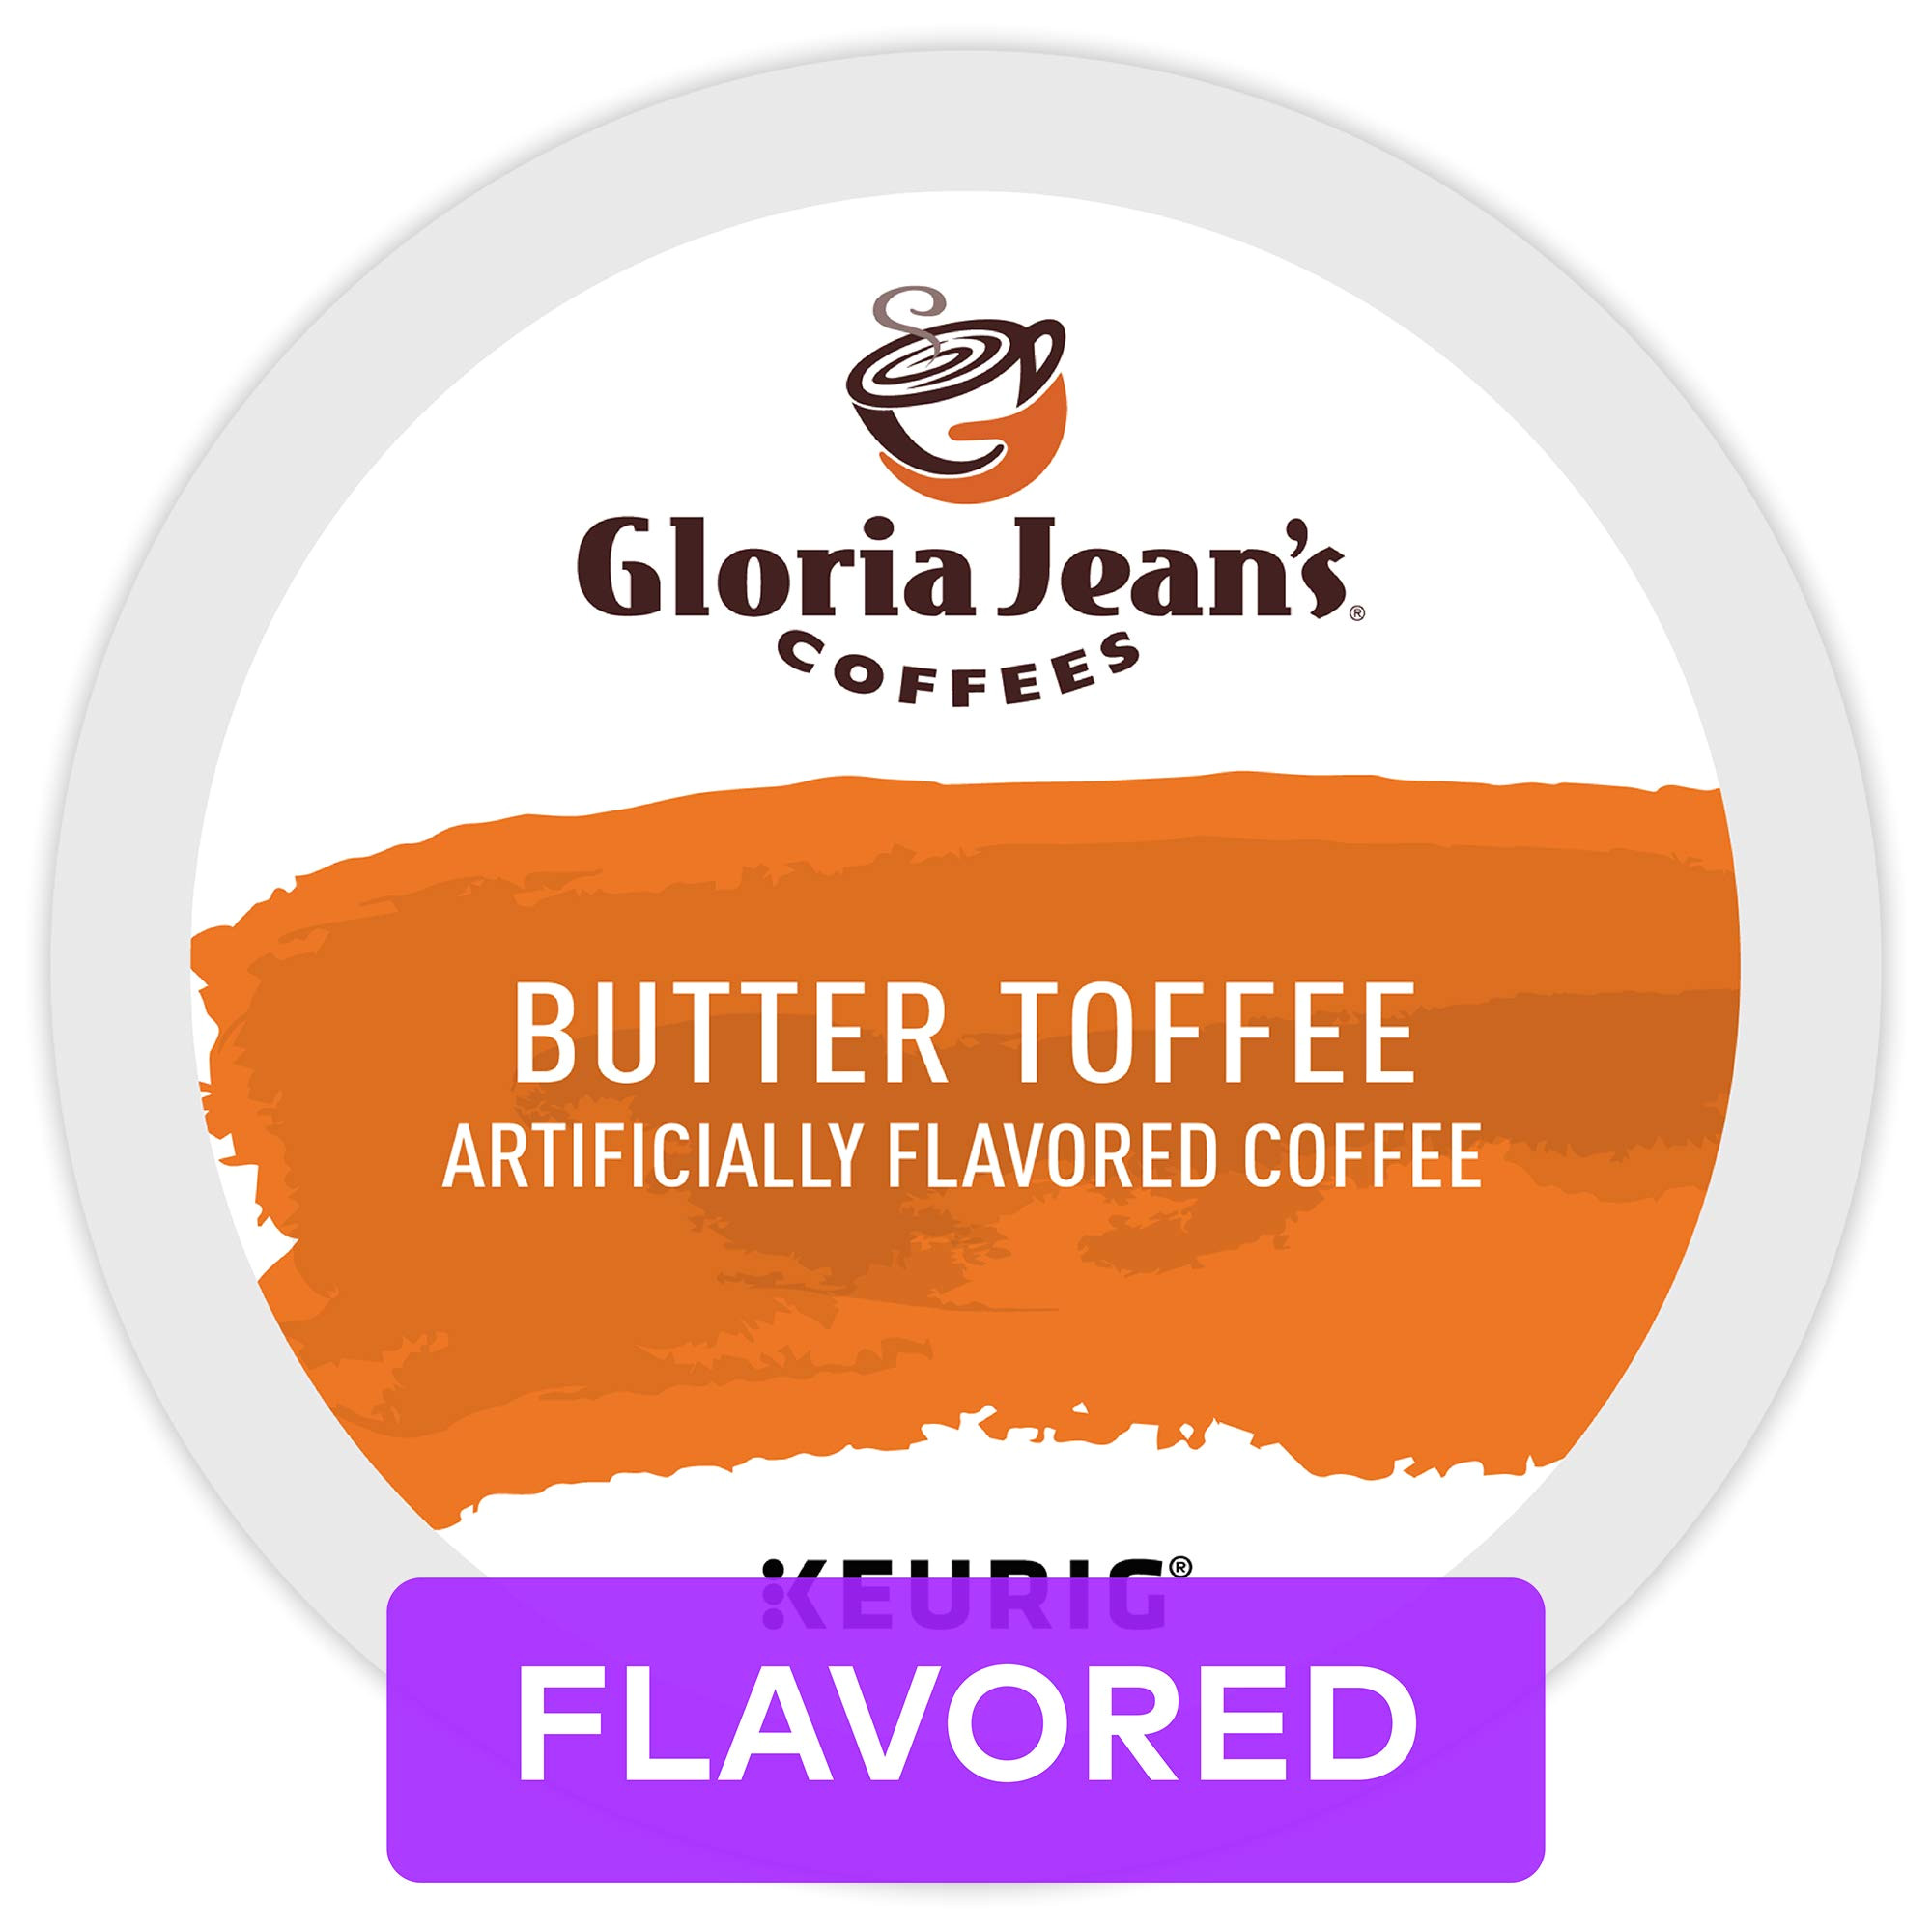 gloria jean s coffees butter toffee single serve coffee k cup pod flavored coffee